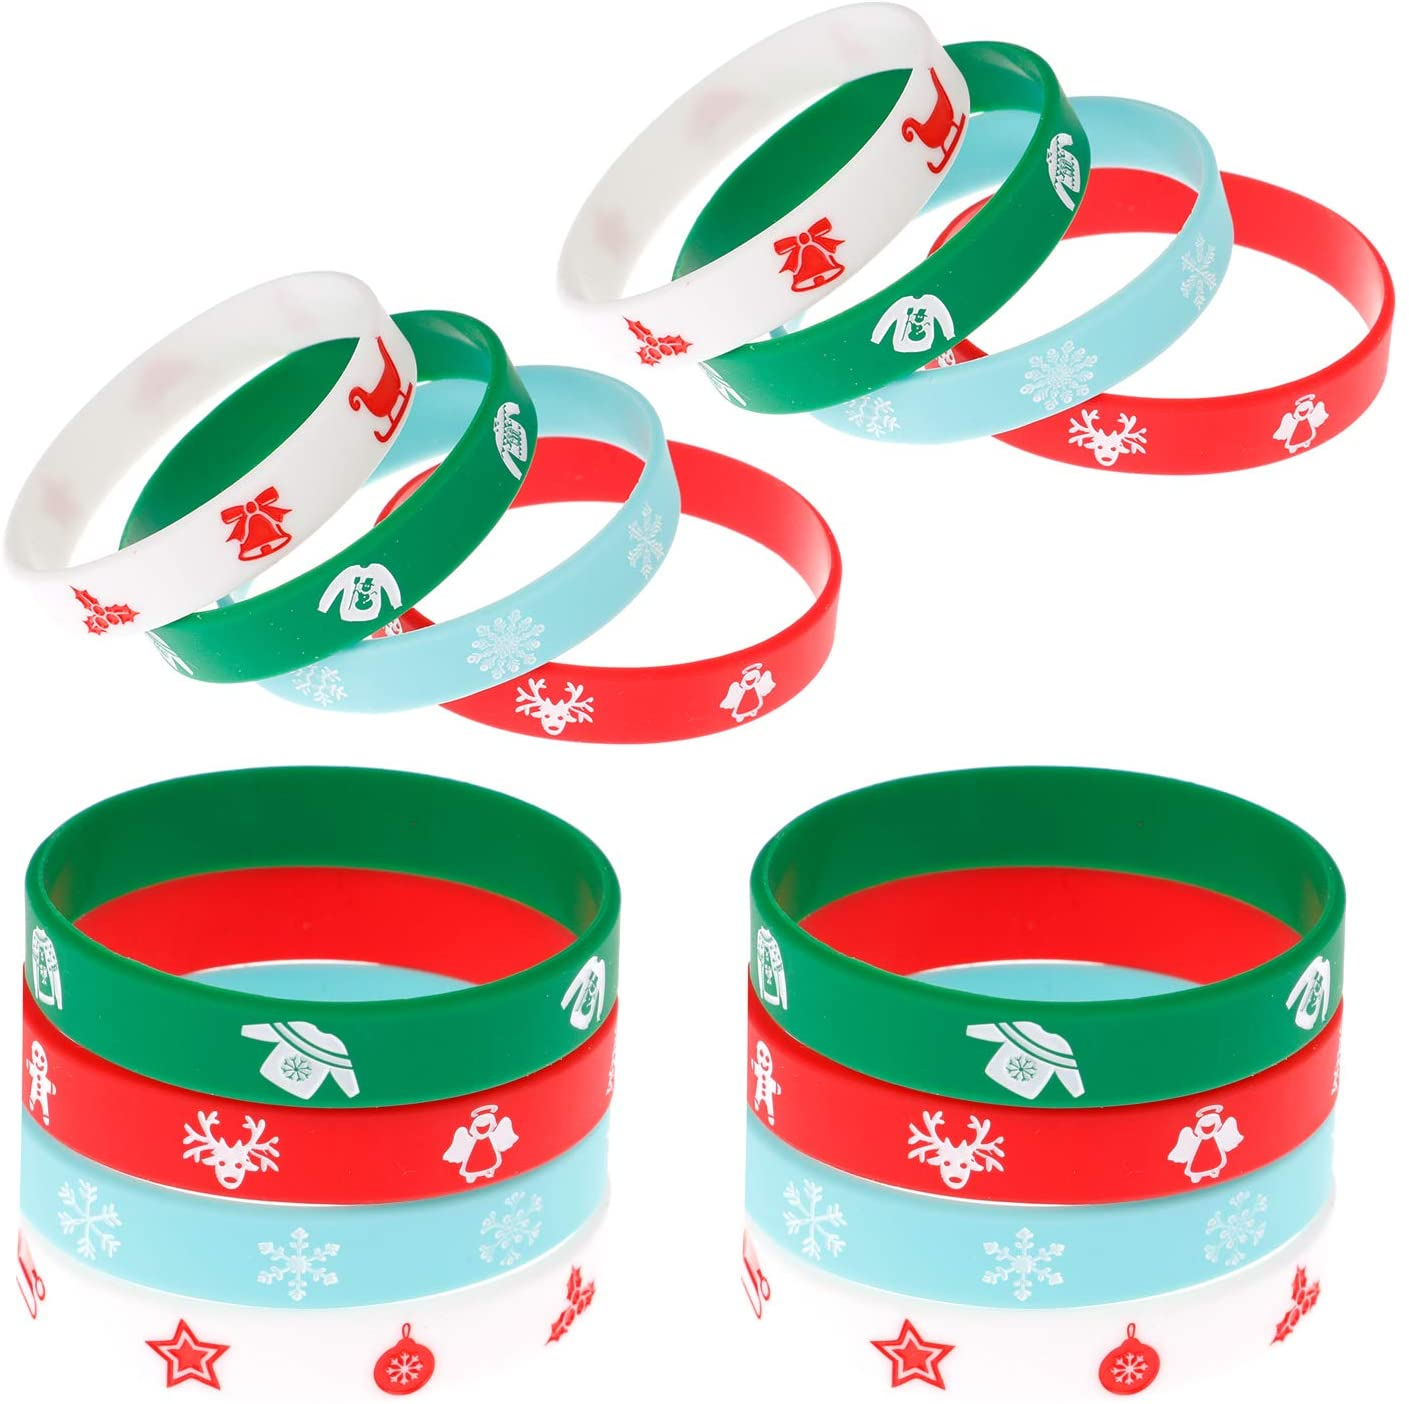 48 Pieces Christmas Silicone Bracelets Wristband for Christmas Party Supplies, 4 Styles